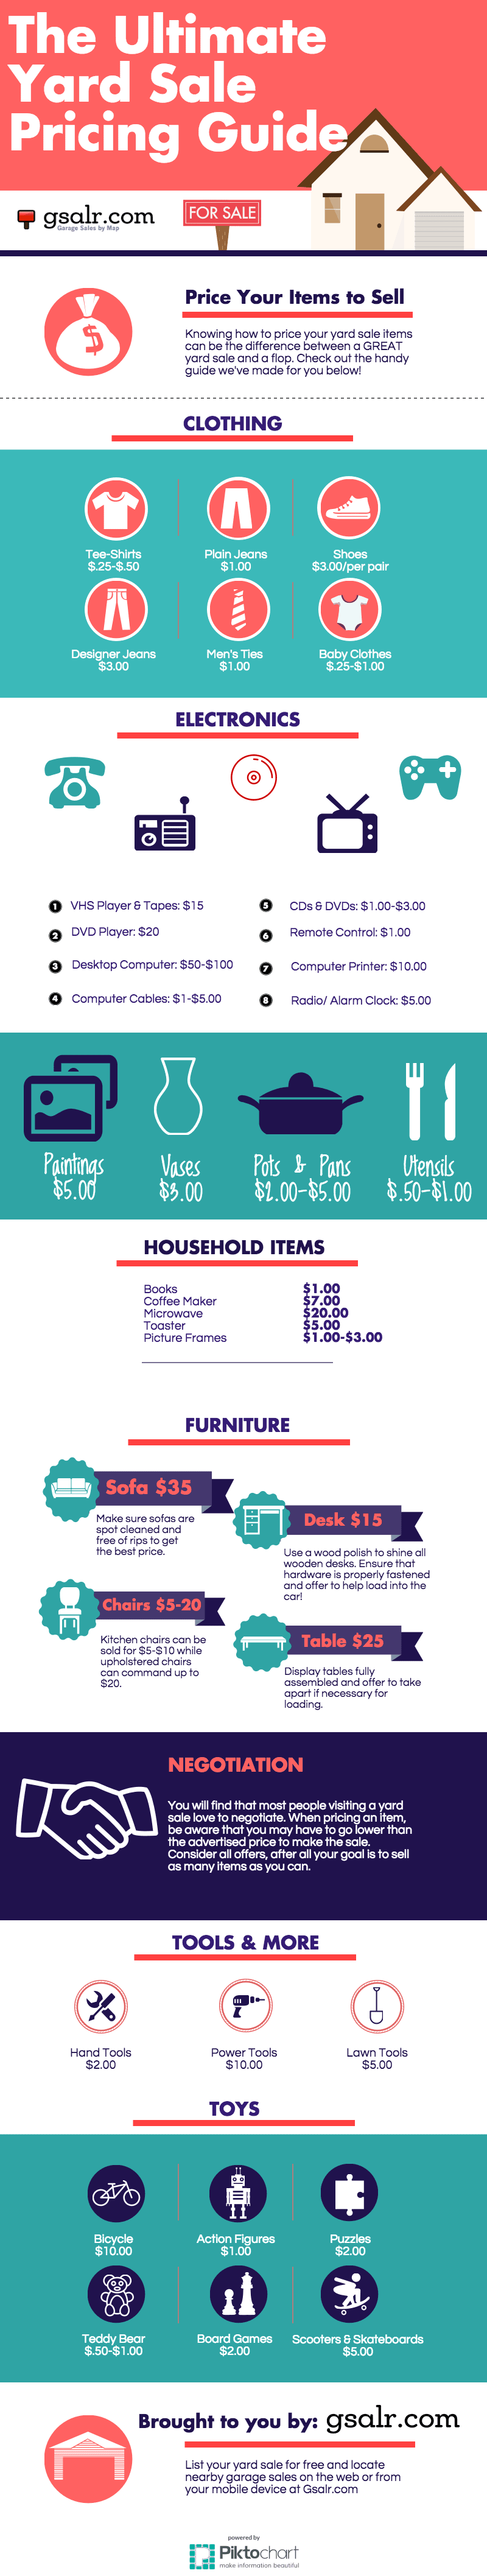 Yard Sale Pricing Guide